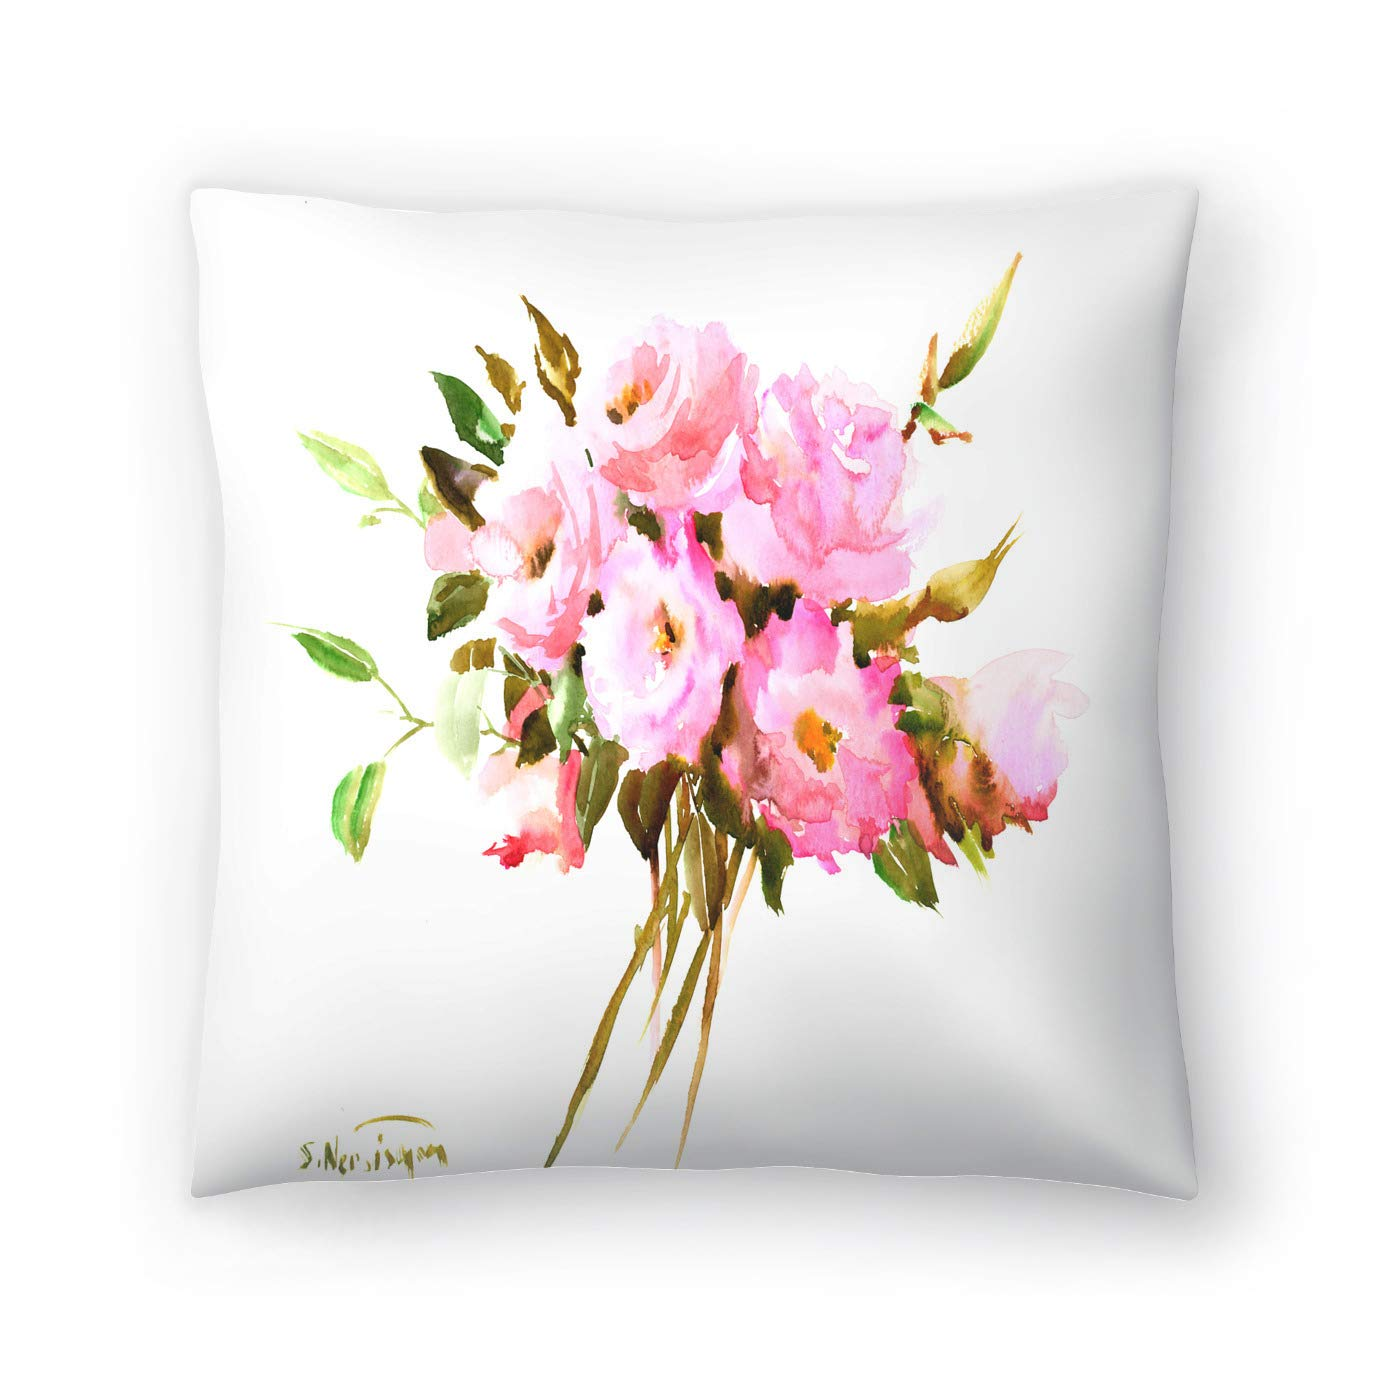 Buy American Flat Pink Roses Pillow By Suren Nersisyan 16 X 16 Online At Low Prices In India Amazon In